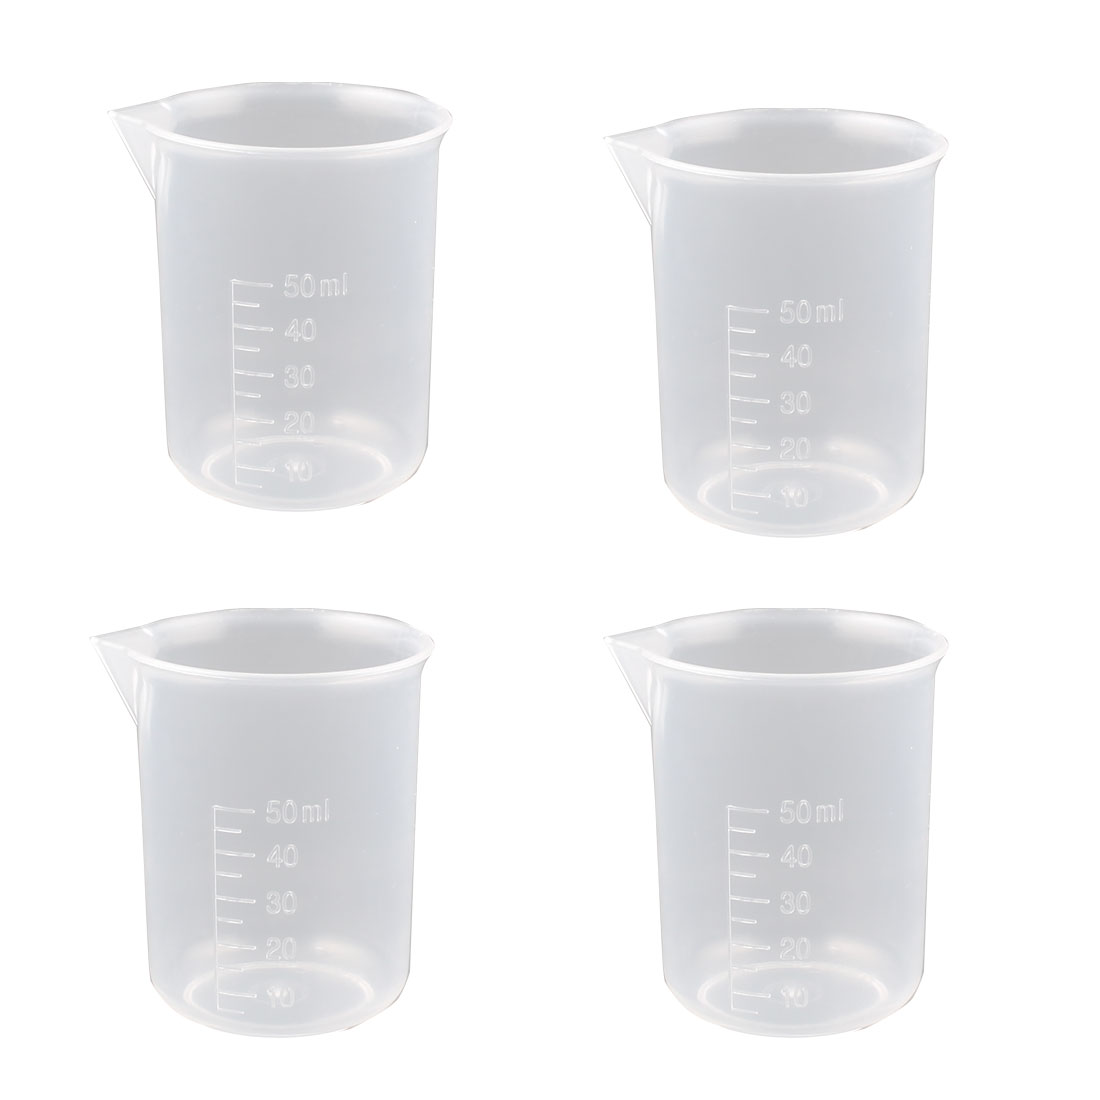 Clear Plastic Measuring Cup Beaker Laboratory Set 50ml Capacity 4 Pcs